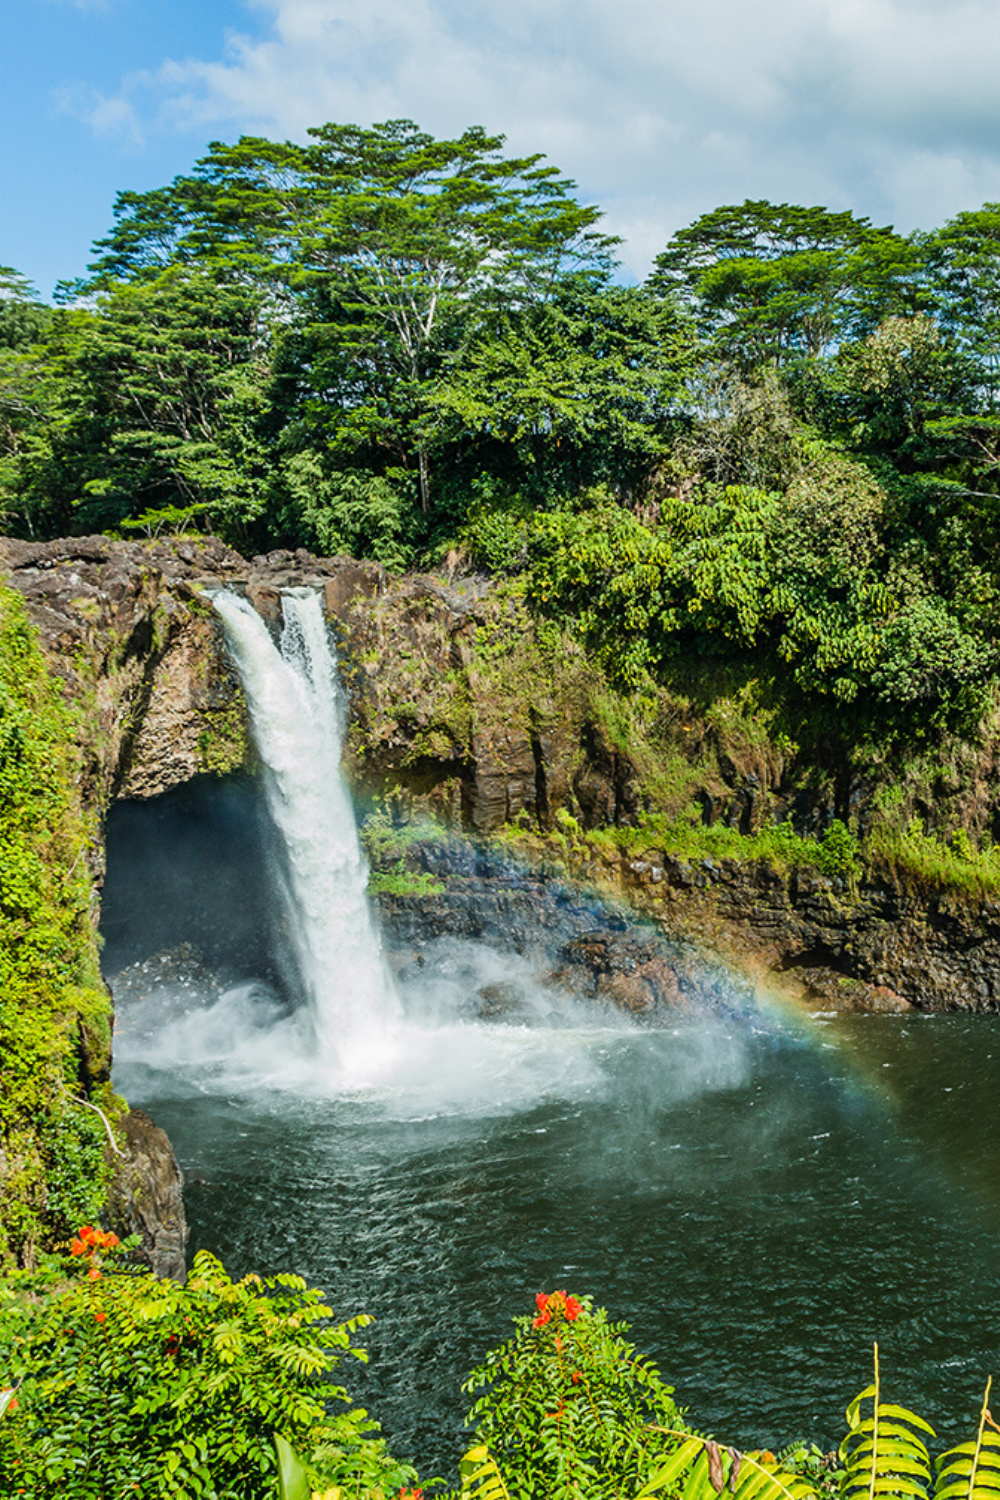 Your Guide To Hilo On Hawaiʻi Island In 2020 Scenic Waterfall Hawaii Waterfalls Hawaii Island